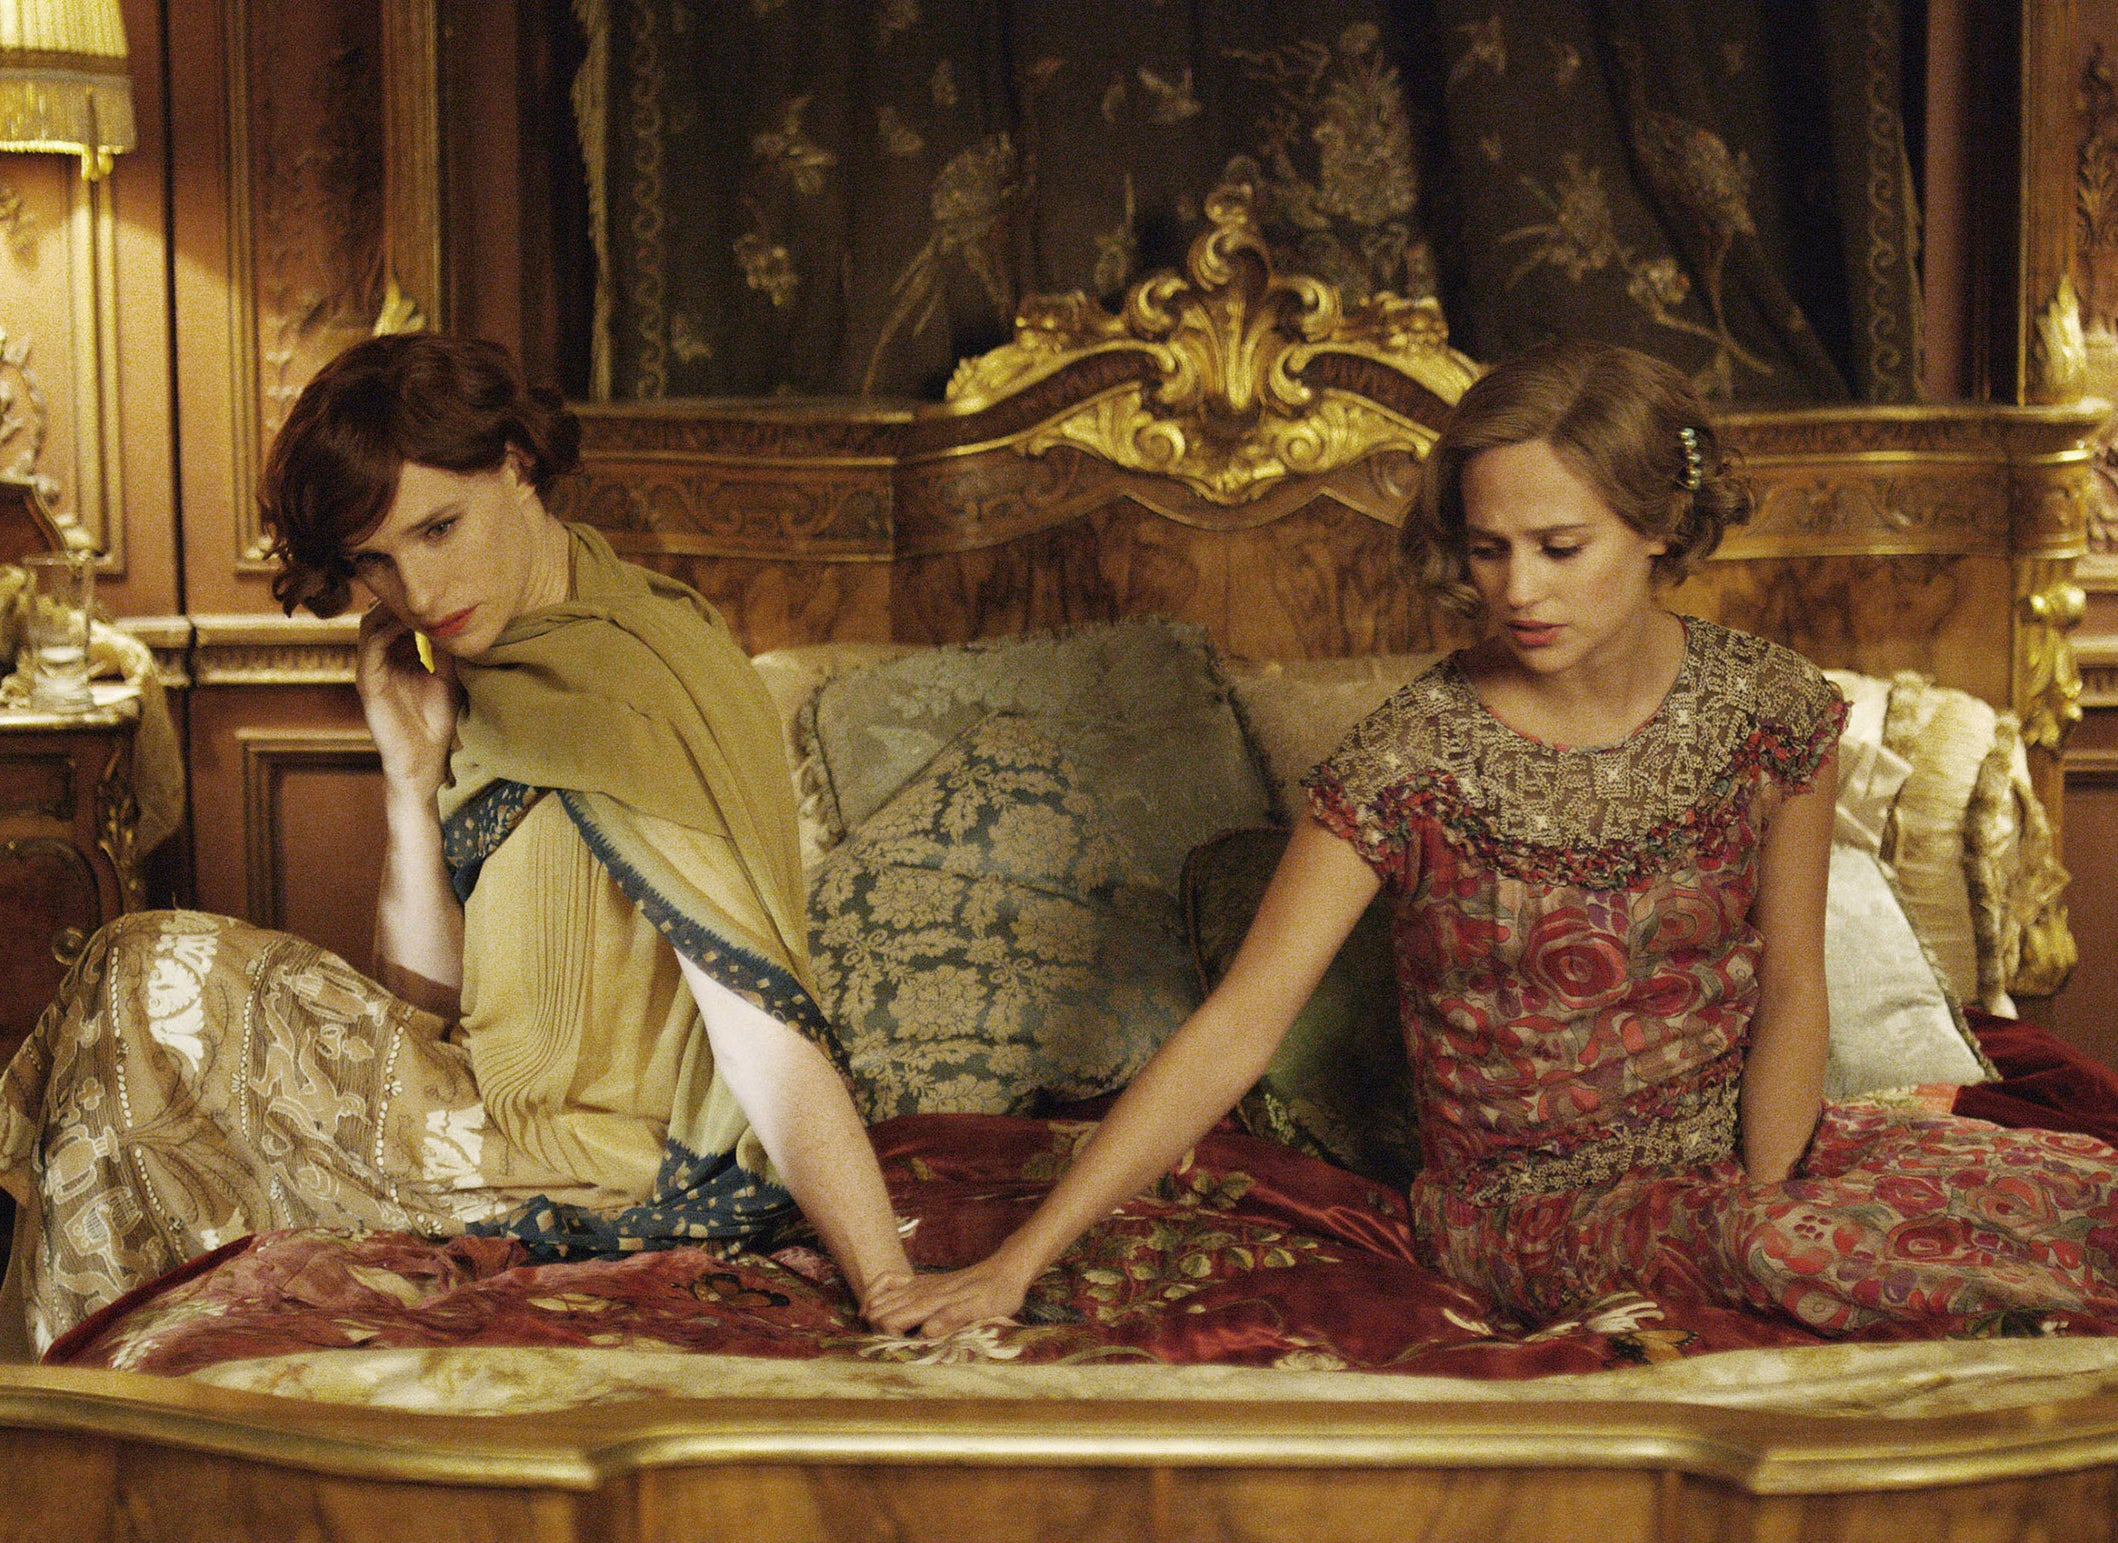 Einar, in women's clothing, sits on a bed next to Gerda